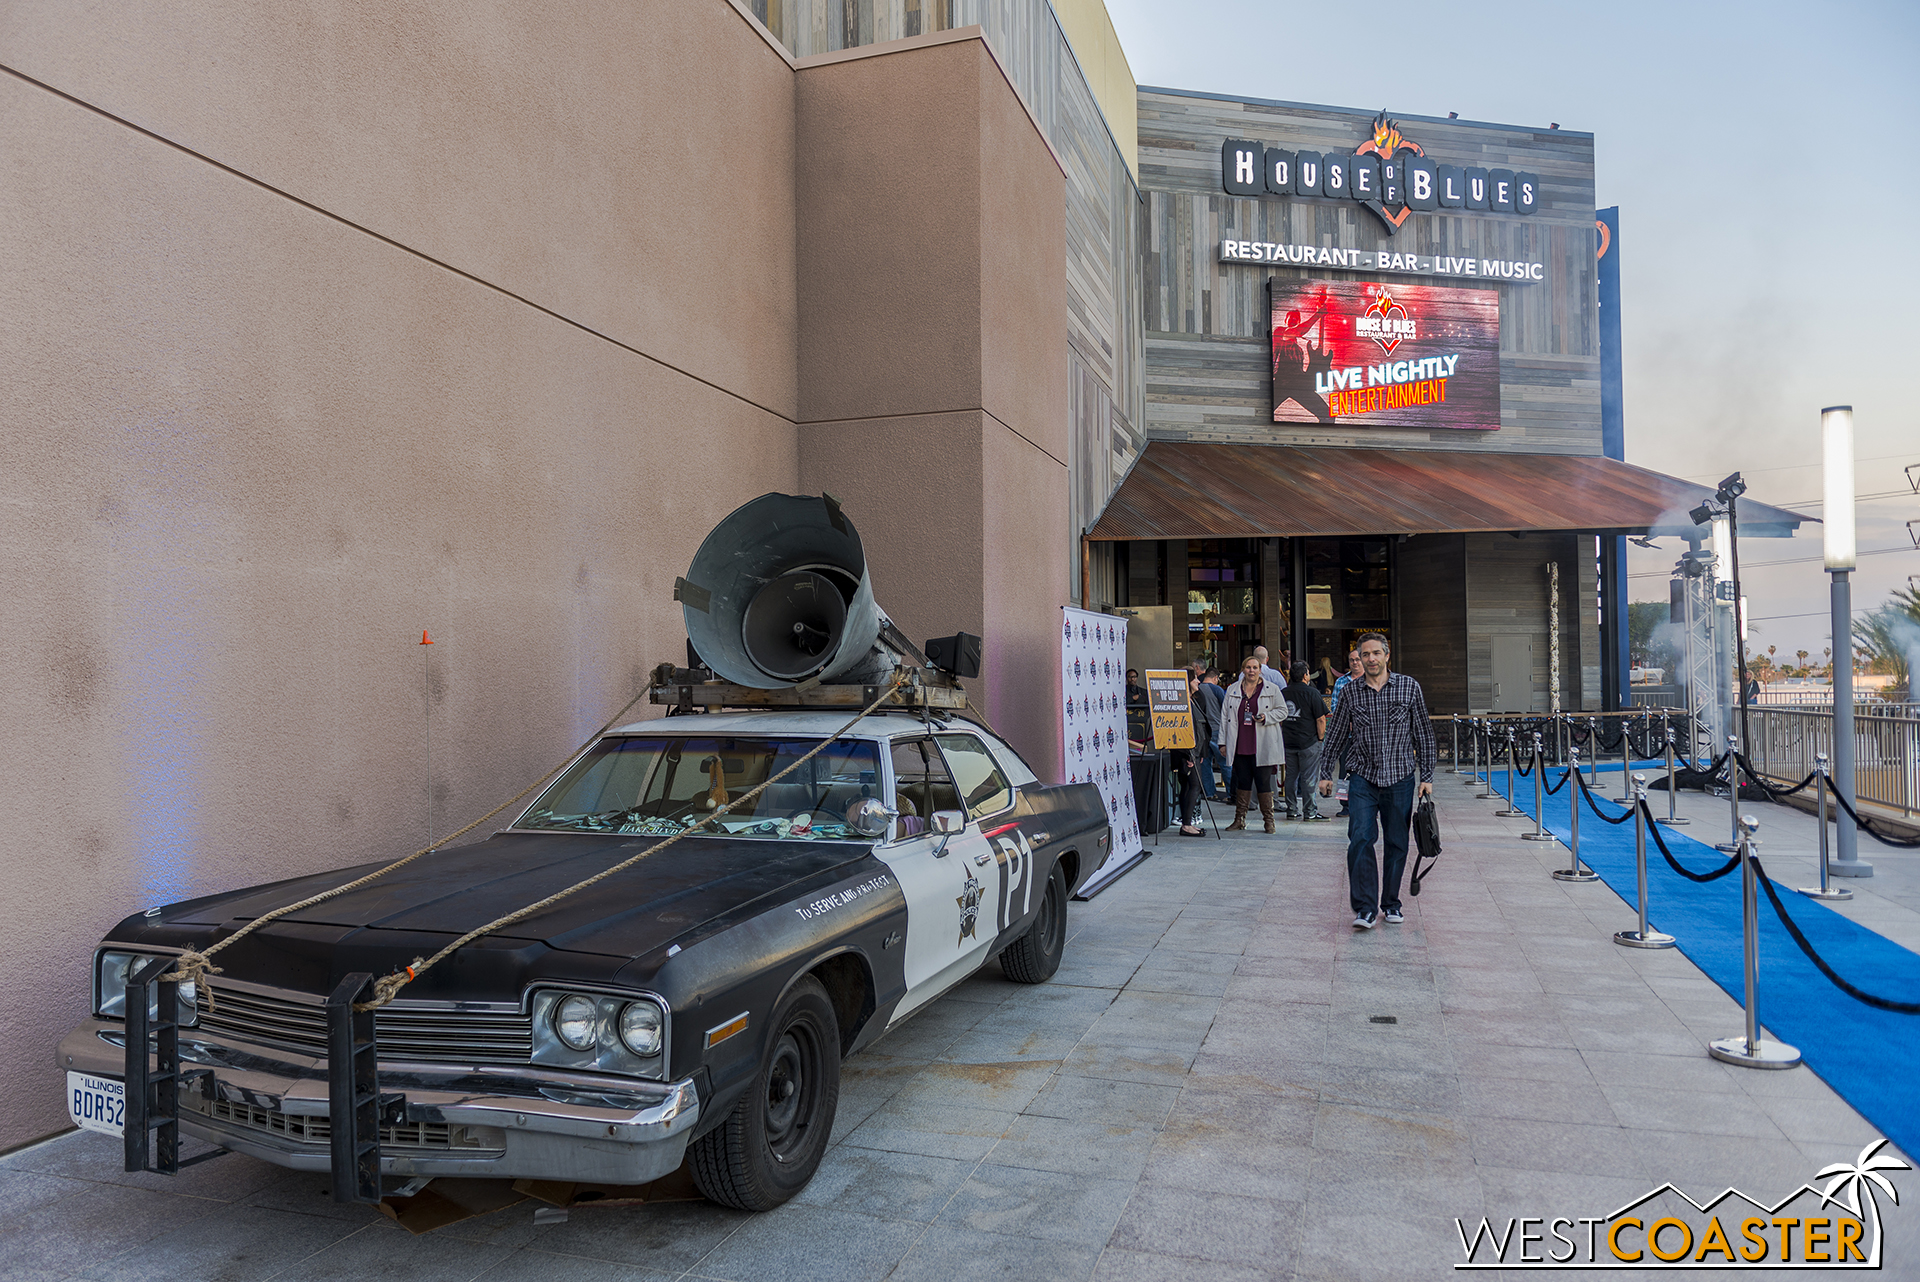 The Blues Brother police car was parked outside the House of Blues entrance on opening night.